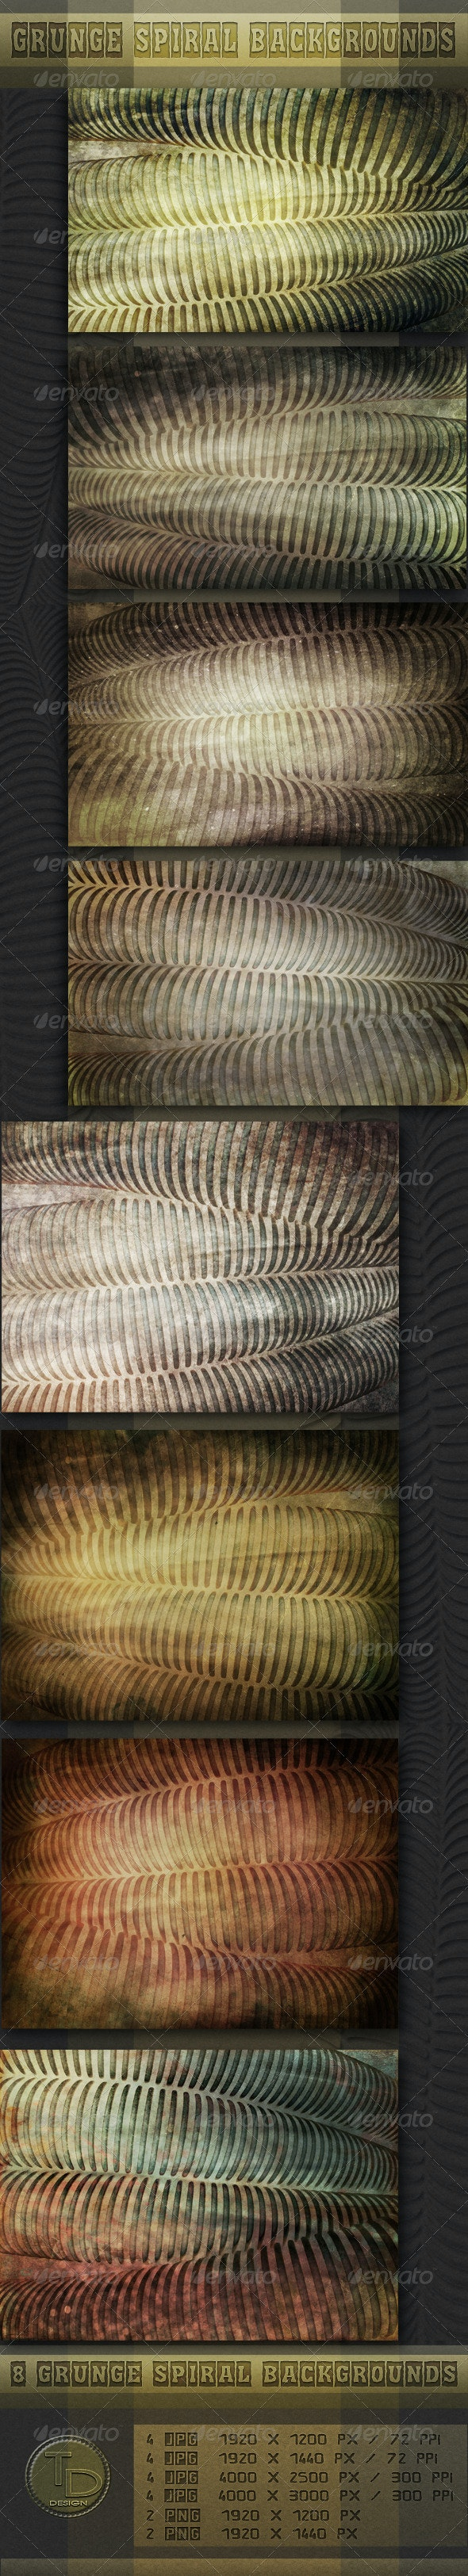 Grunge Spiral Backgrounds - Miscellaneous Backgrounds